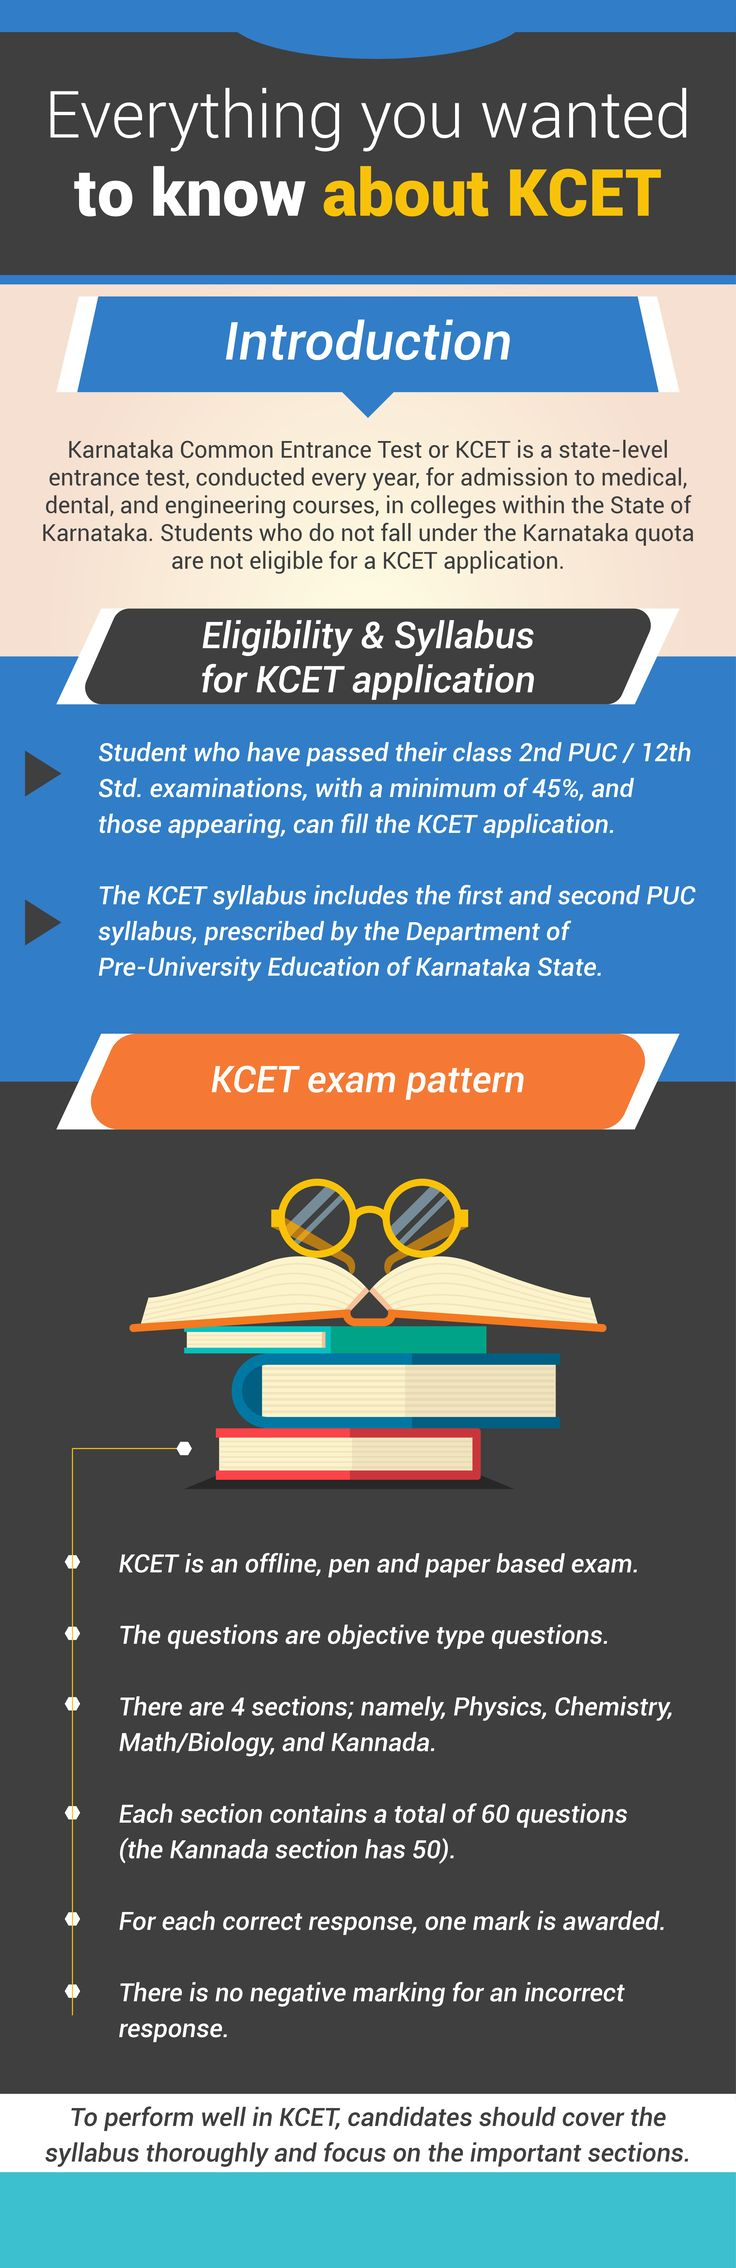 Karnataka Common Entrance Test or KCET is a state-level entrance test, conducted every year, for admission to medical, dental, and engineering courses, in colleges within the State of Karnataka. Students who do not fall under the Karnataka quota are not eligible for a KCET application. For More Info:-http://www.htcampus.com/exam/kcet/